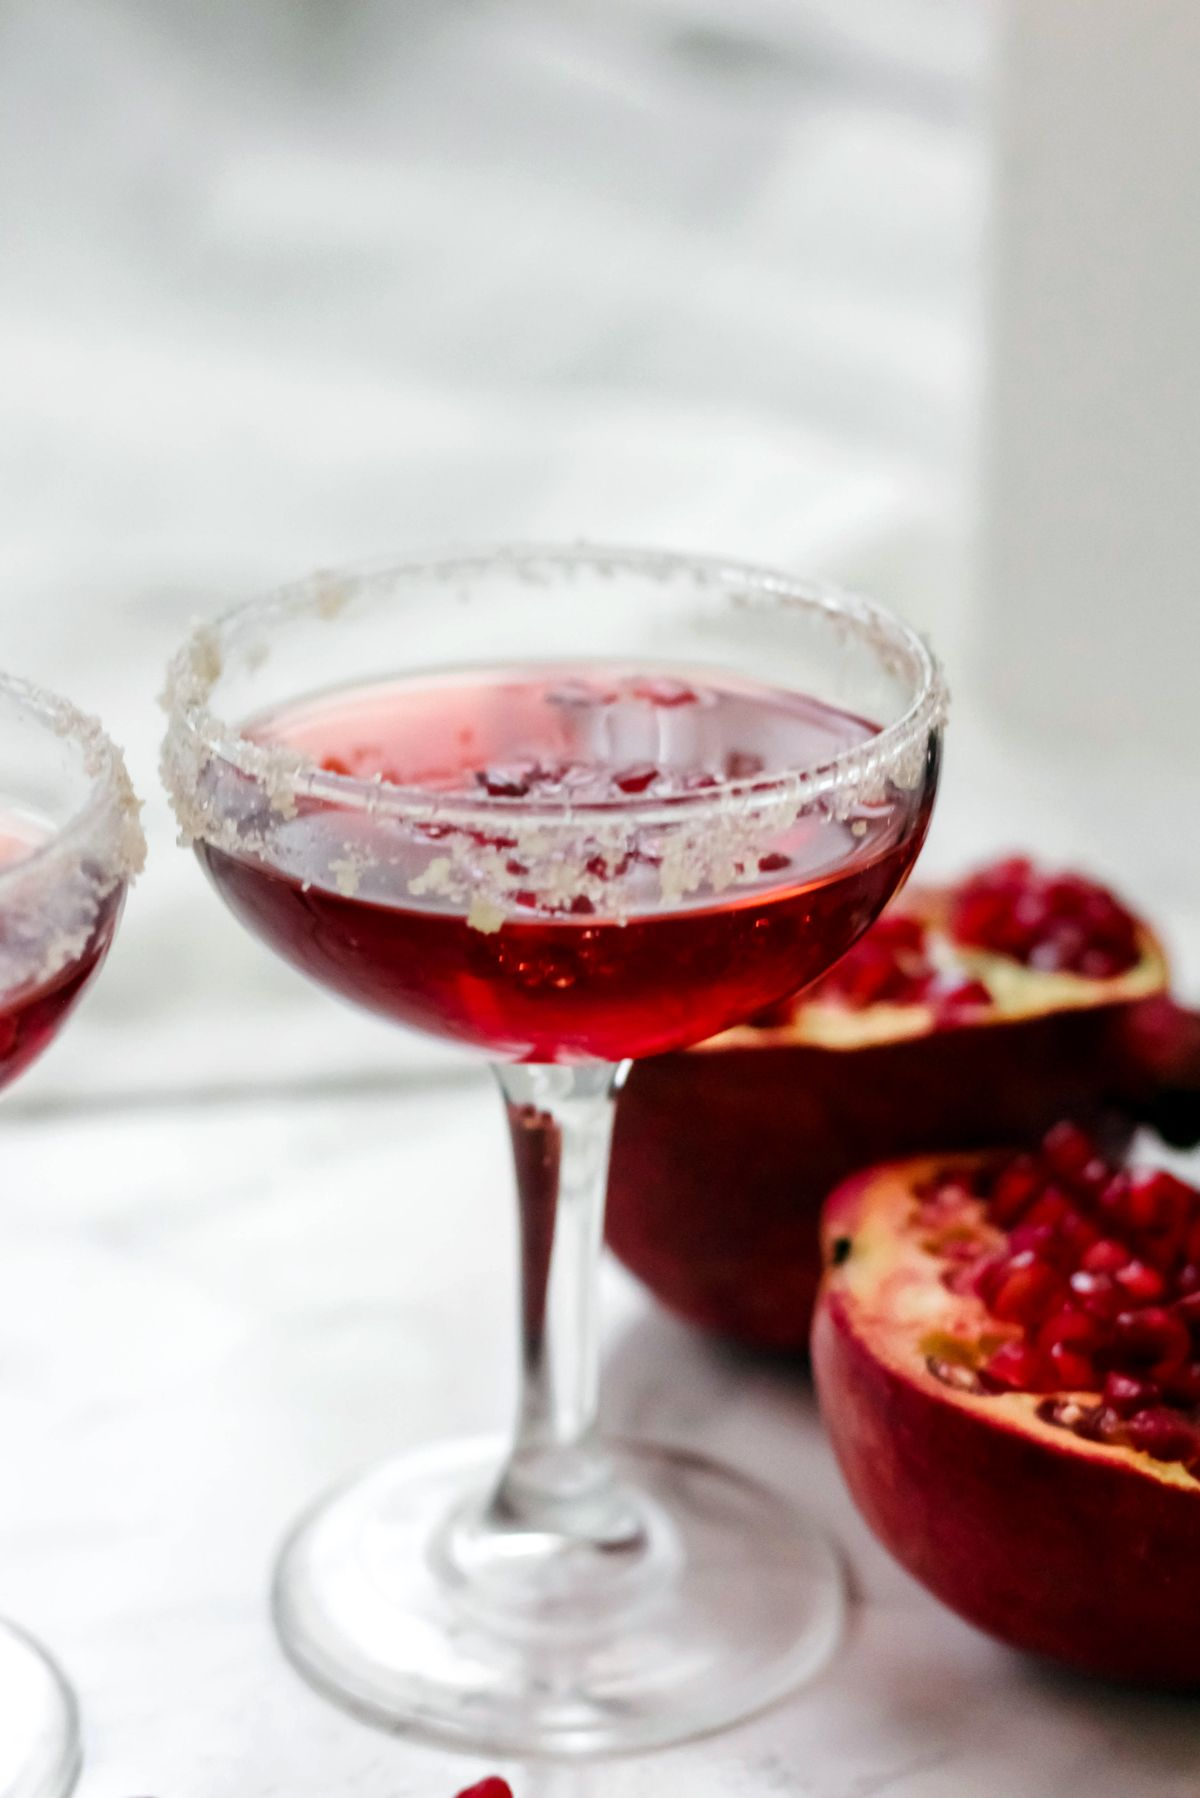 Sparkling Pomegranate Ginger Prosecco Cocktail Recipe Coctails Recipes Delicious Drink Recipes Liquid Lunch